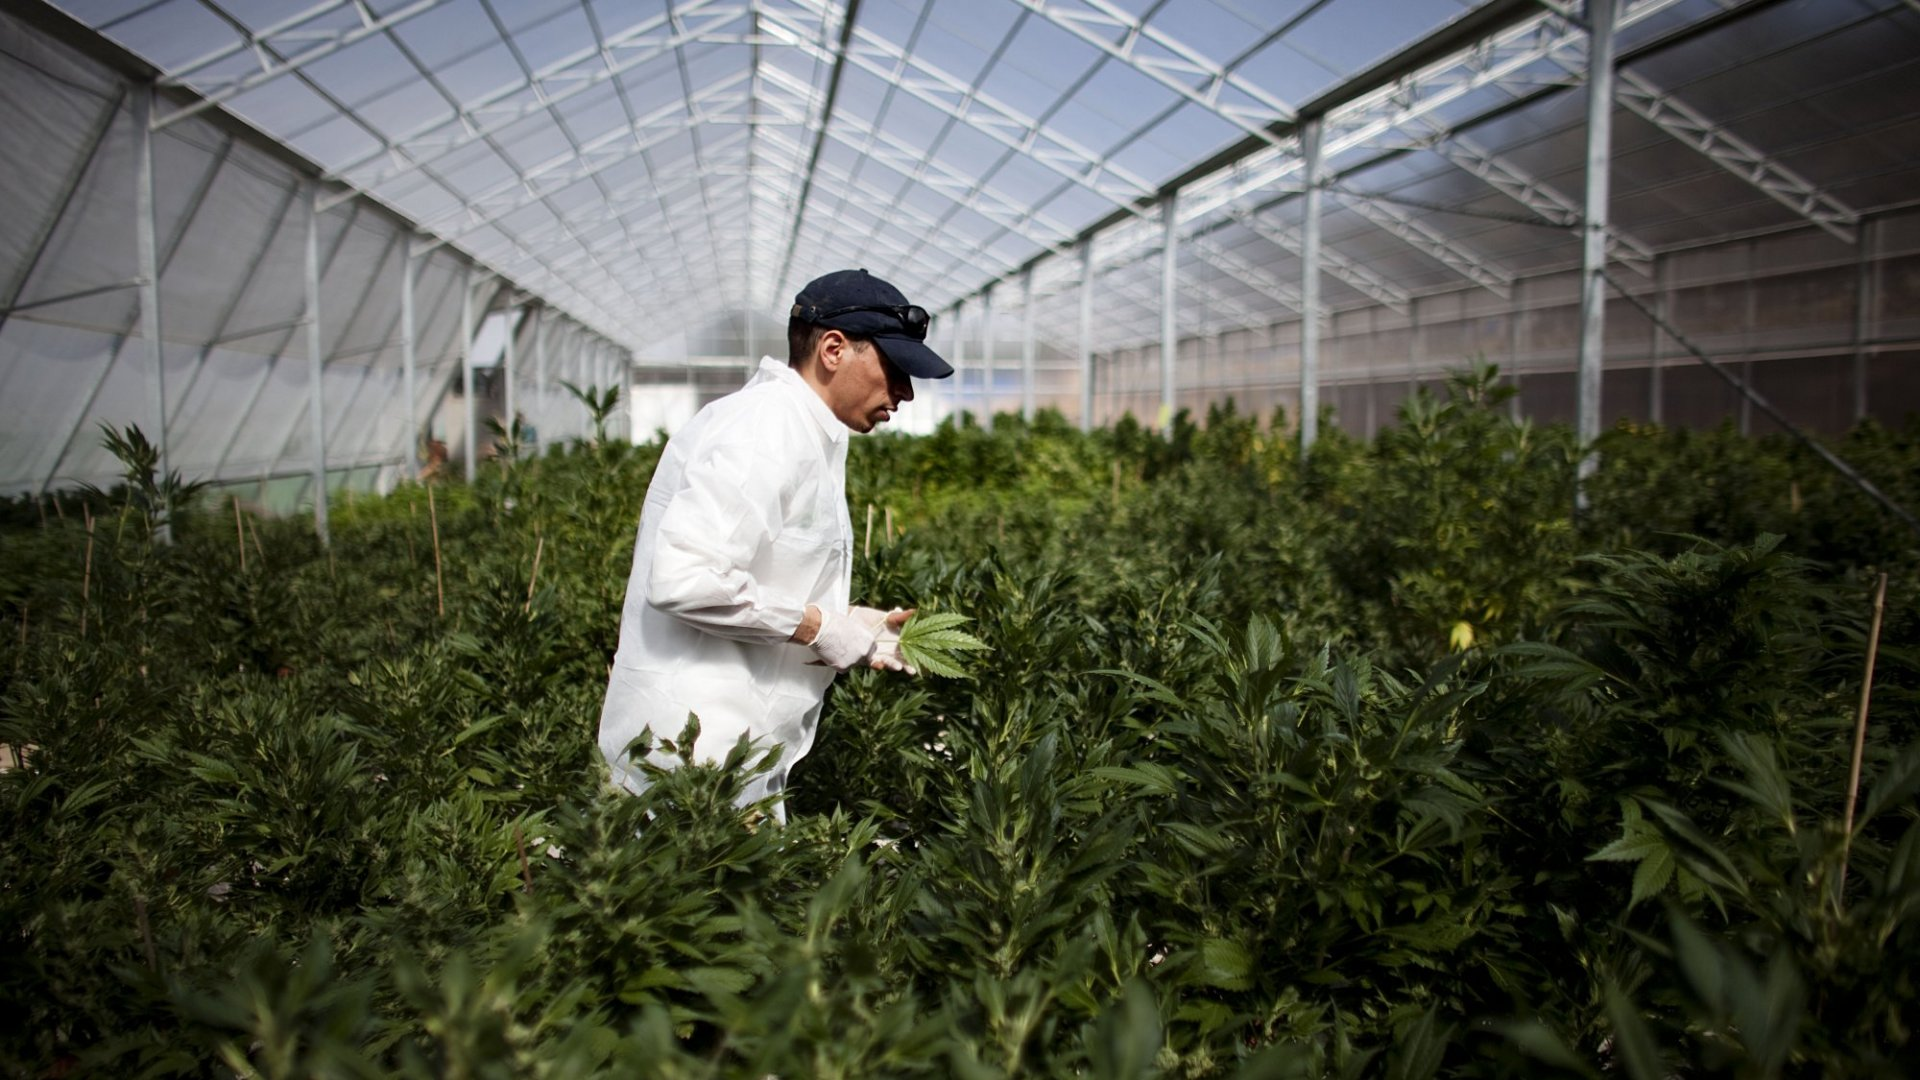 Marijuana is being produced around the world, from Israel to Australia. Above, the growing facility of the Tikun Olam in Safed, Israel, with Israel's Health Ministry, distributes cannabis for medicinal purposes to over 1800 people. (Photo by Uriel Sinai/Getty Images)